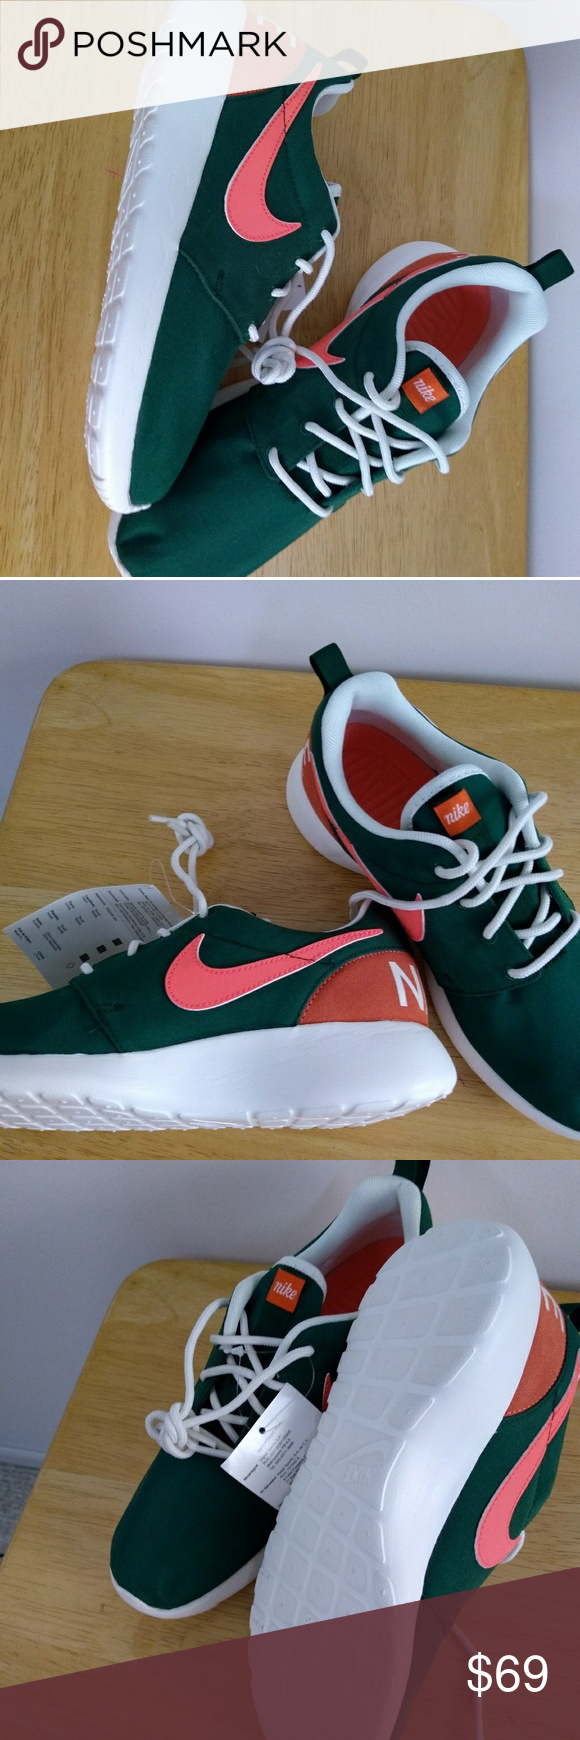 buy popular 762fc dbd80 Womens Nike Roshe One Retro Shoes 6.5 Womens Nike Roshe One Retro Shoes  Gorge Green Orange 6.5 New in Box Nike Shoes Athletic Shoes